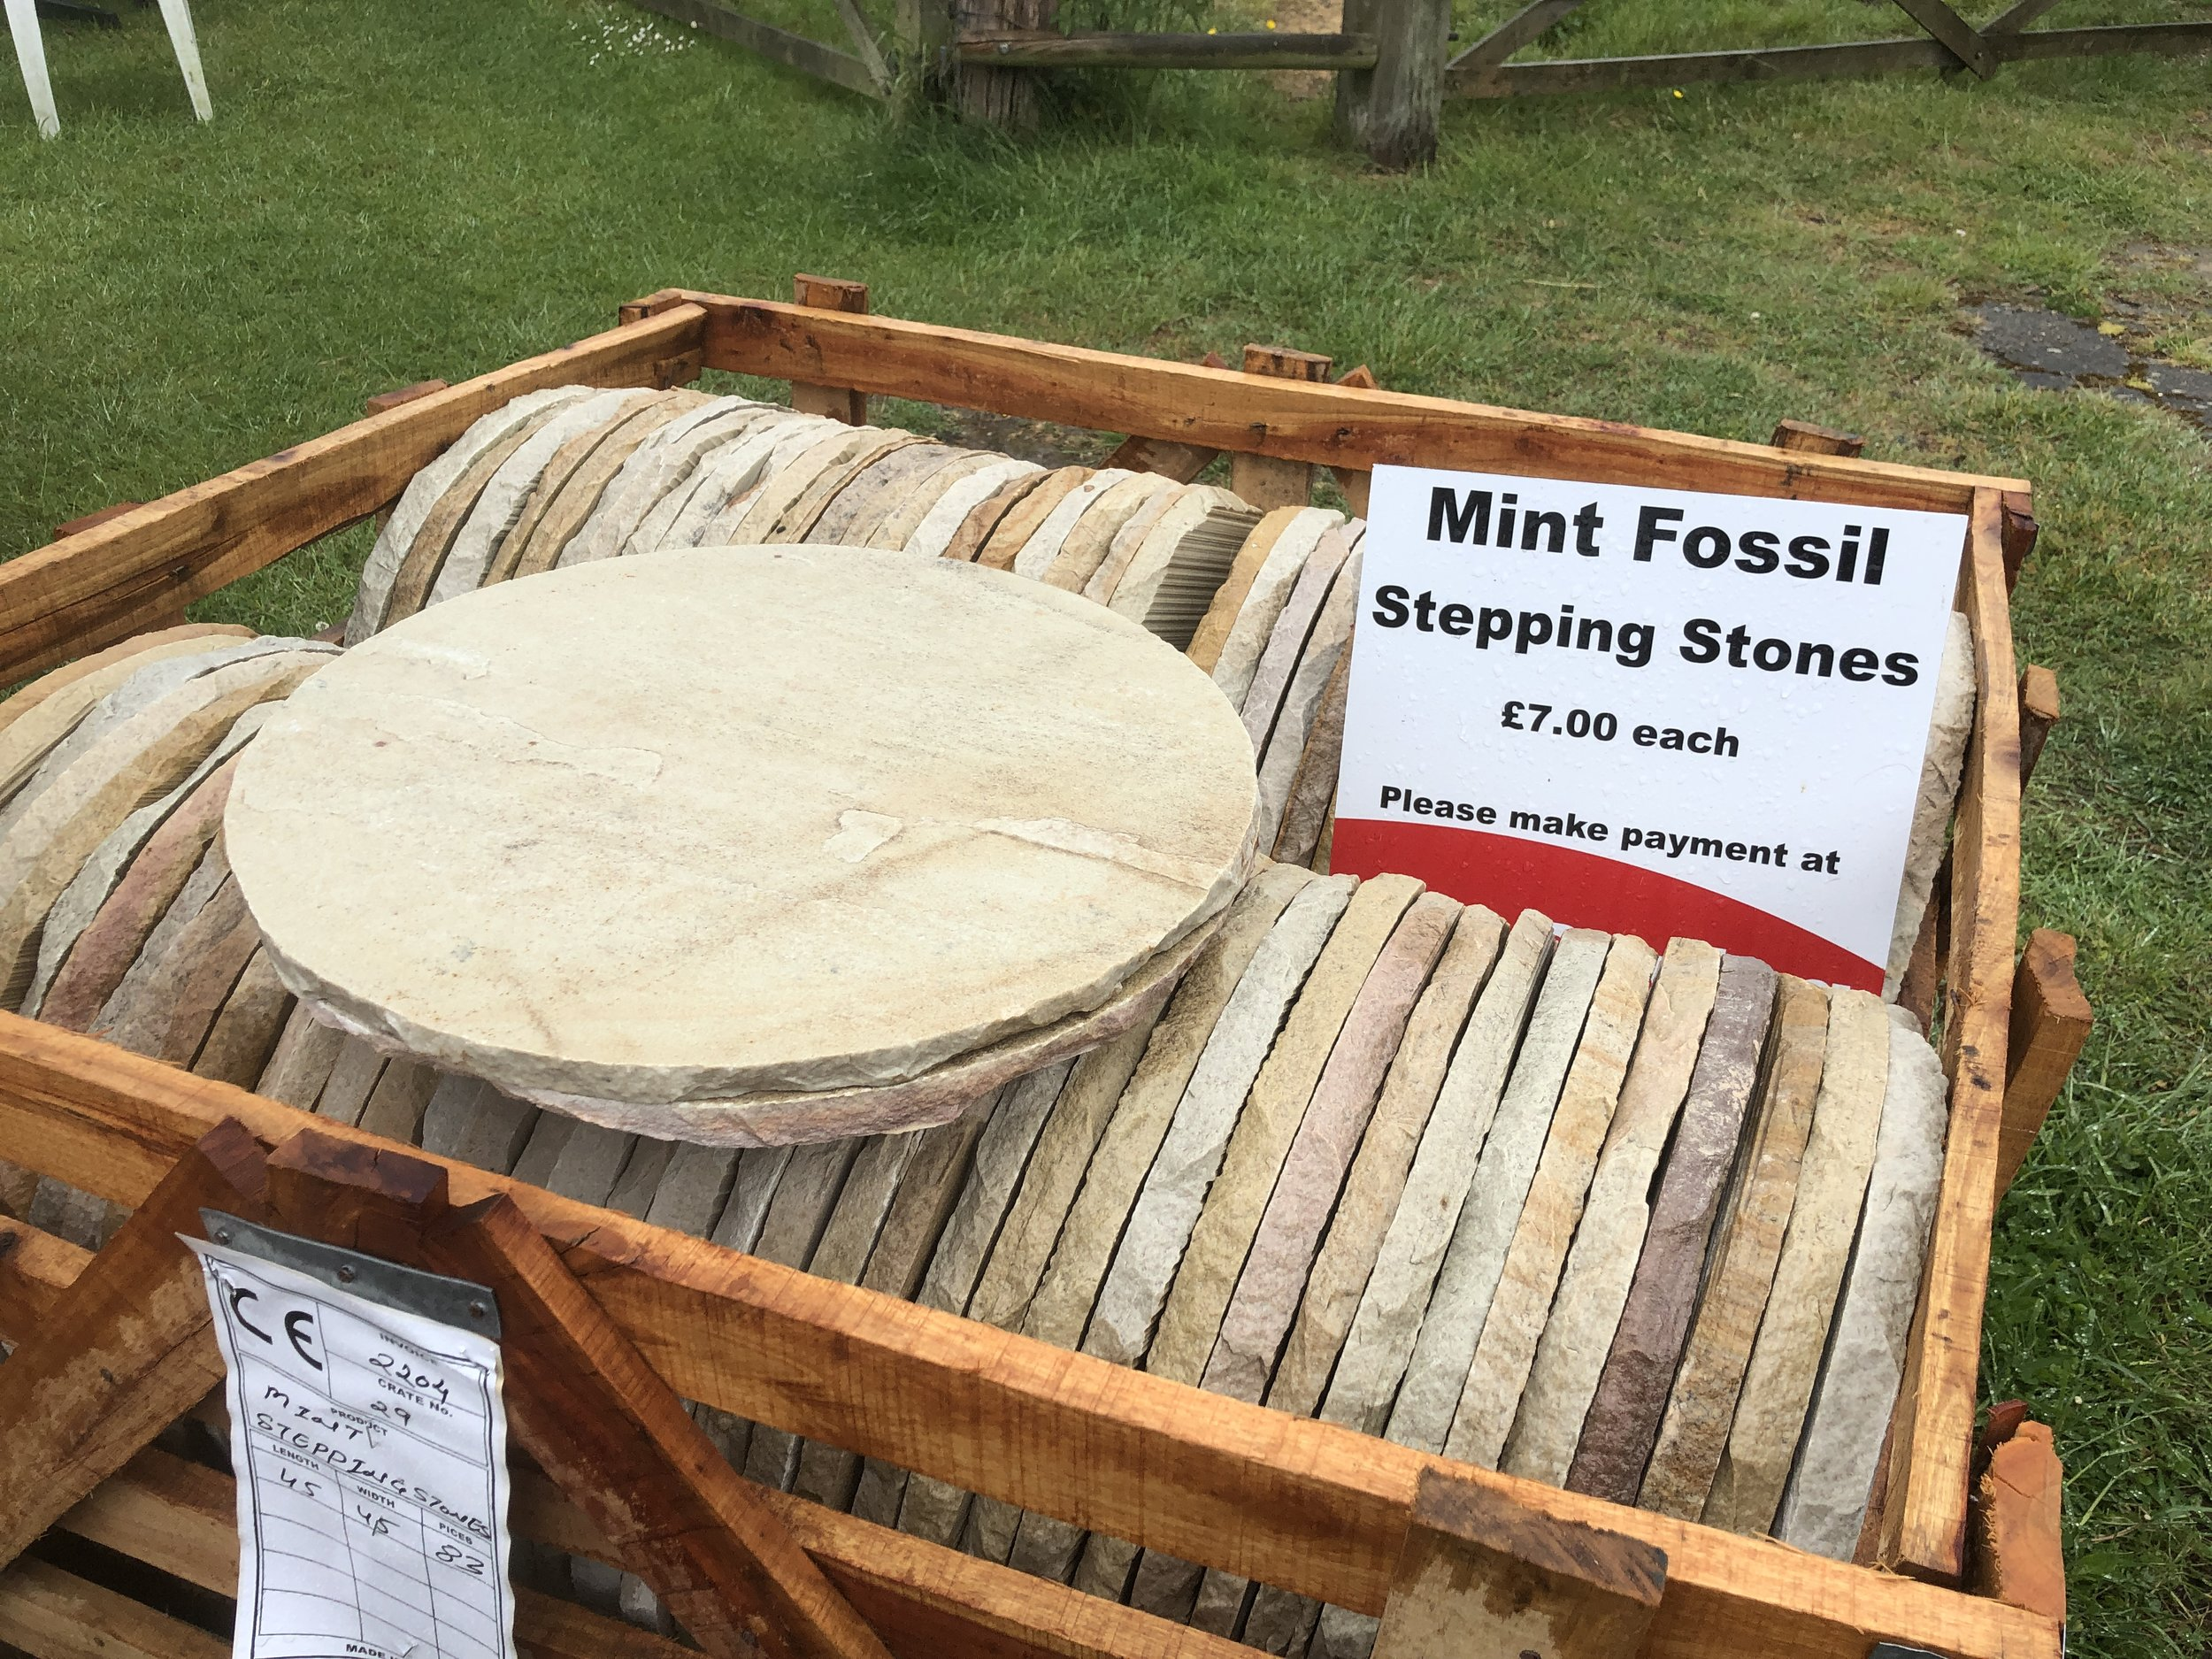 Mint Fossil -   Click for more information and pricing.